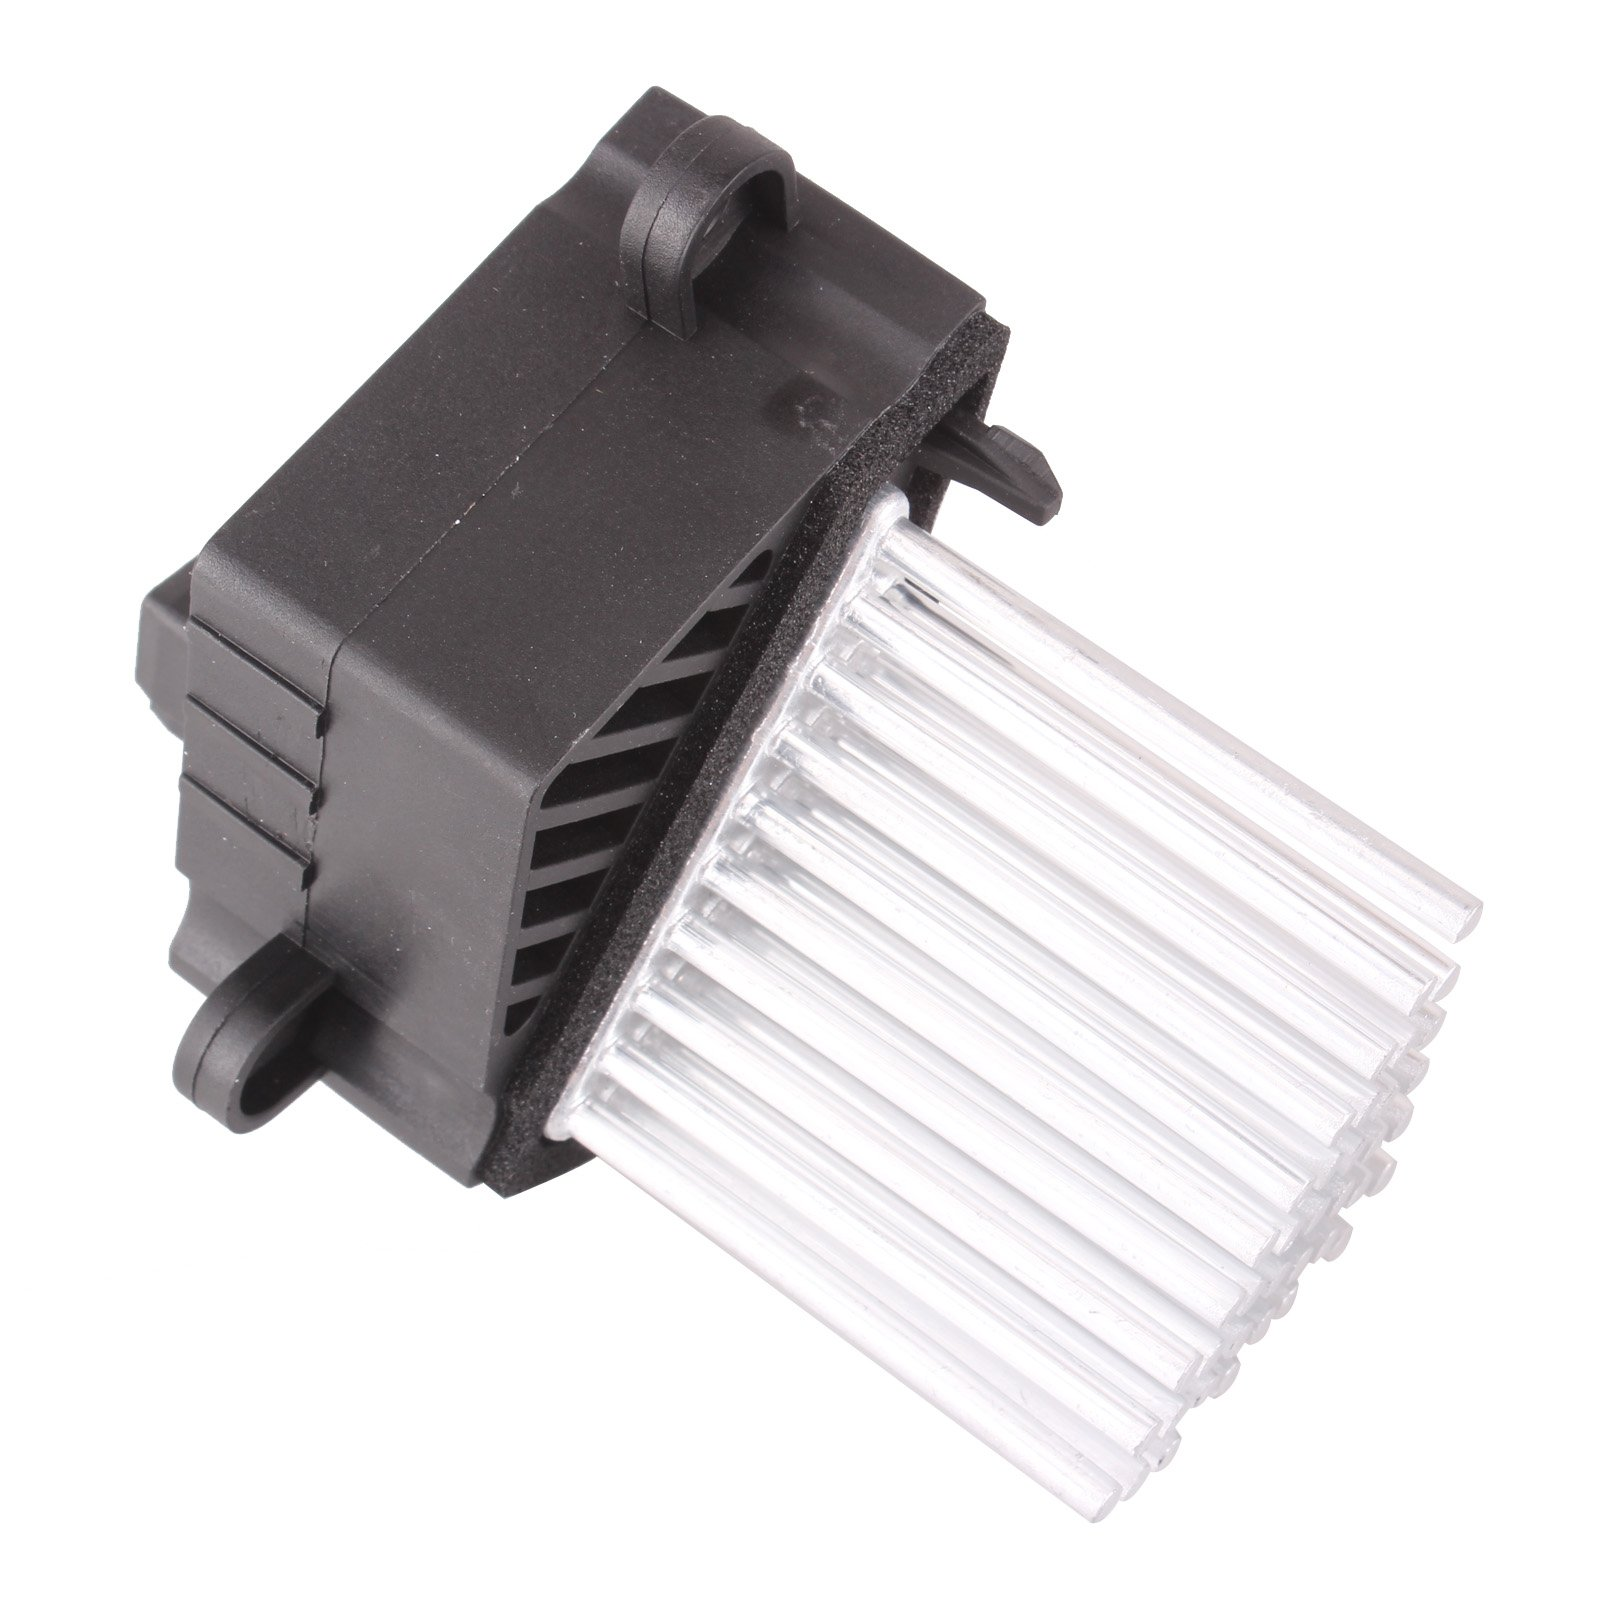 BMW Heater Blower Motor Resistor Final Stage Contol Unit For BMW E46 E39 X5 X3 97-06 64116923204 64116929486